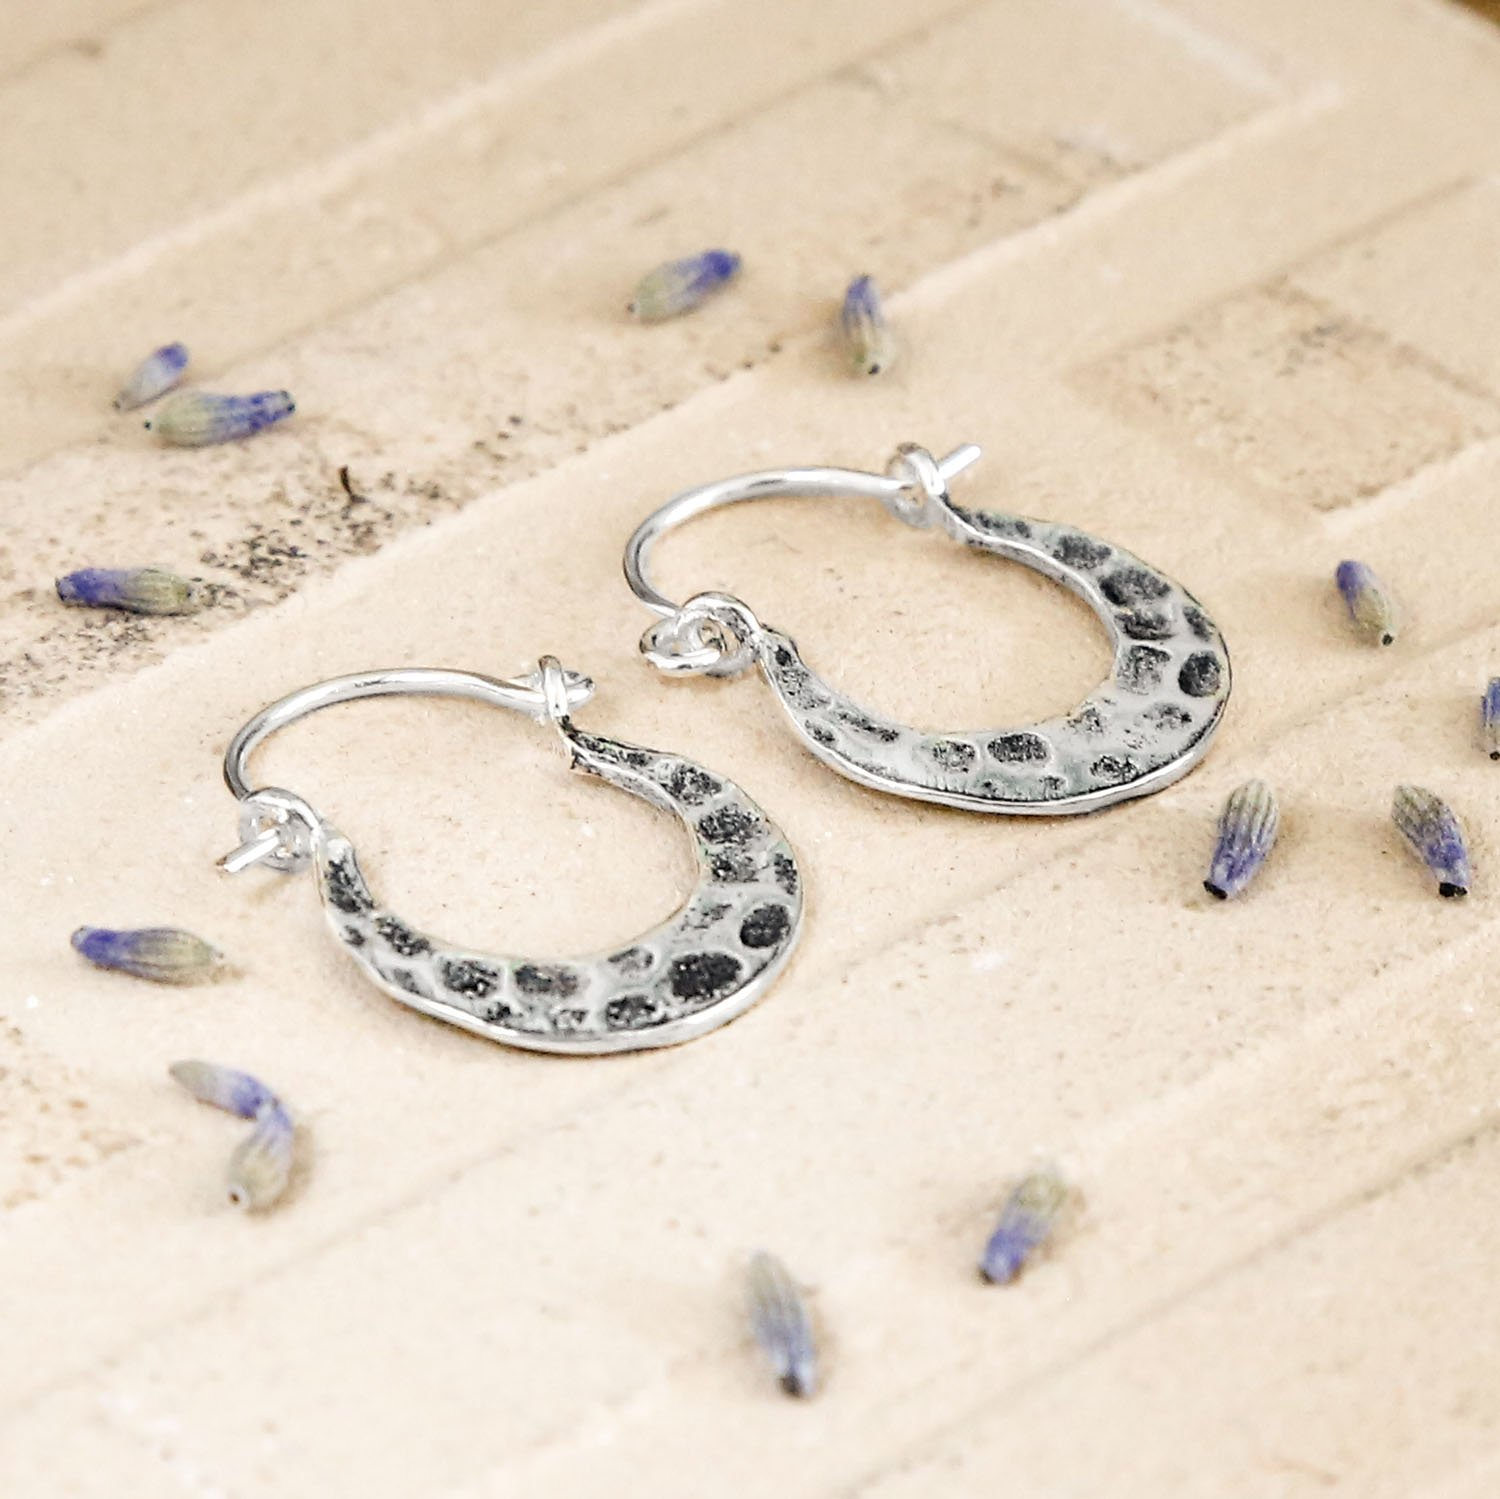 Silver Hammered Hoop with a Horse Shoe Shape and Oxidised Detail, on a terracotta background with Dried Lavender petals